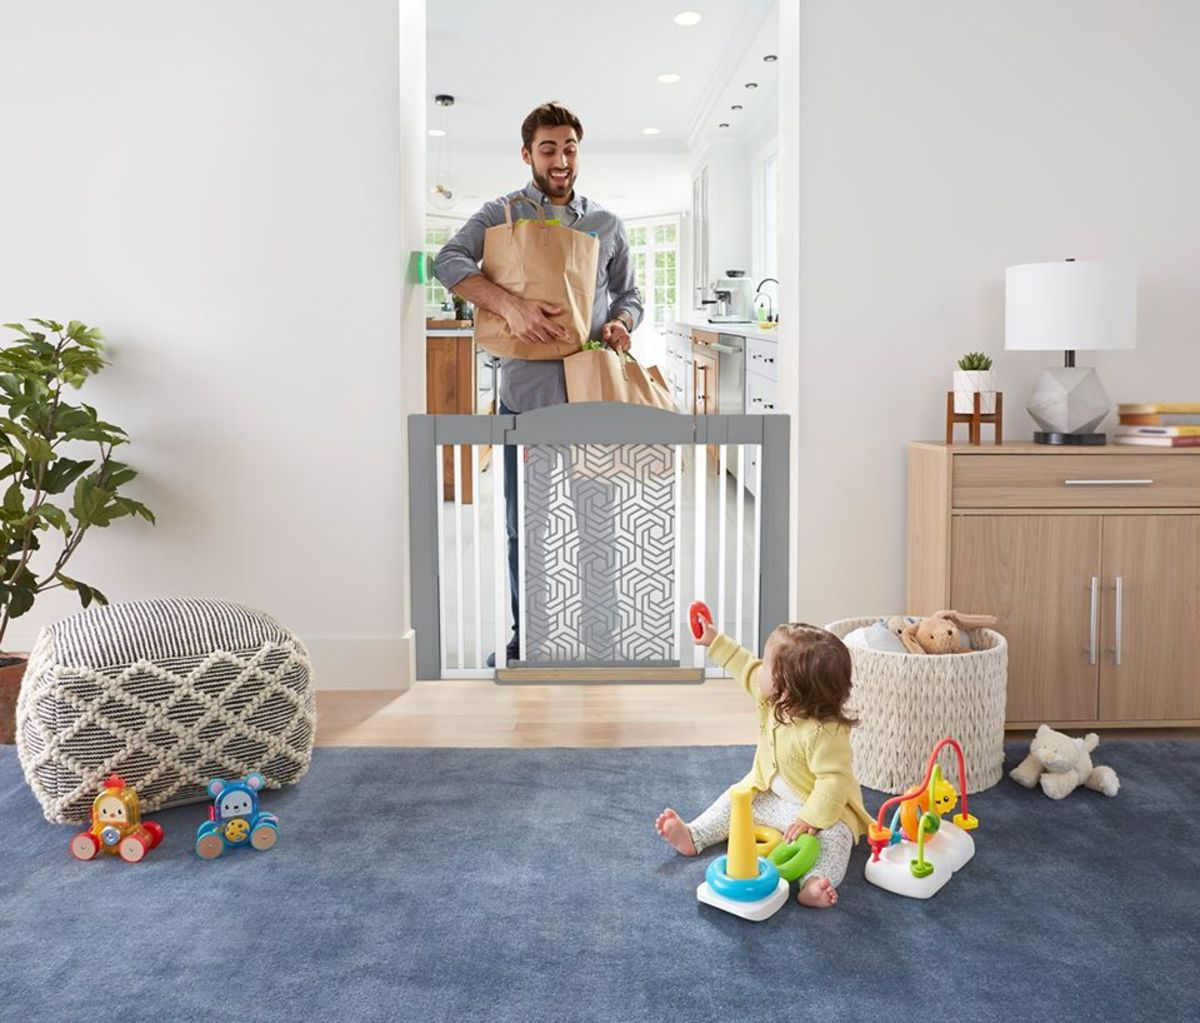 Best in Show: Fisher Price Click™ Hands-Free Baby Gate